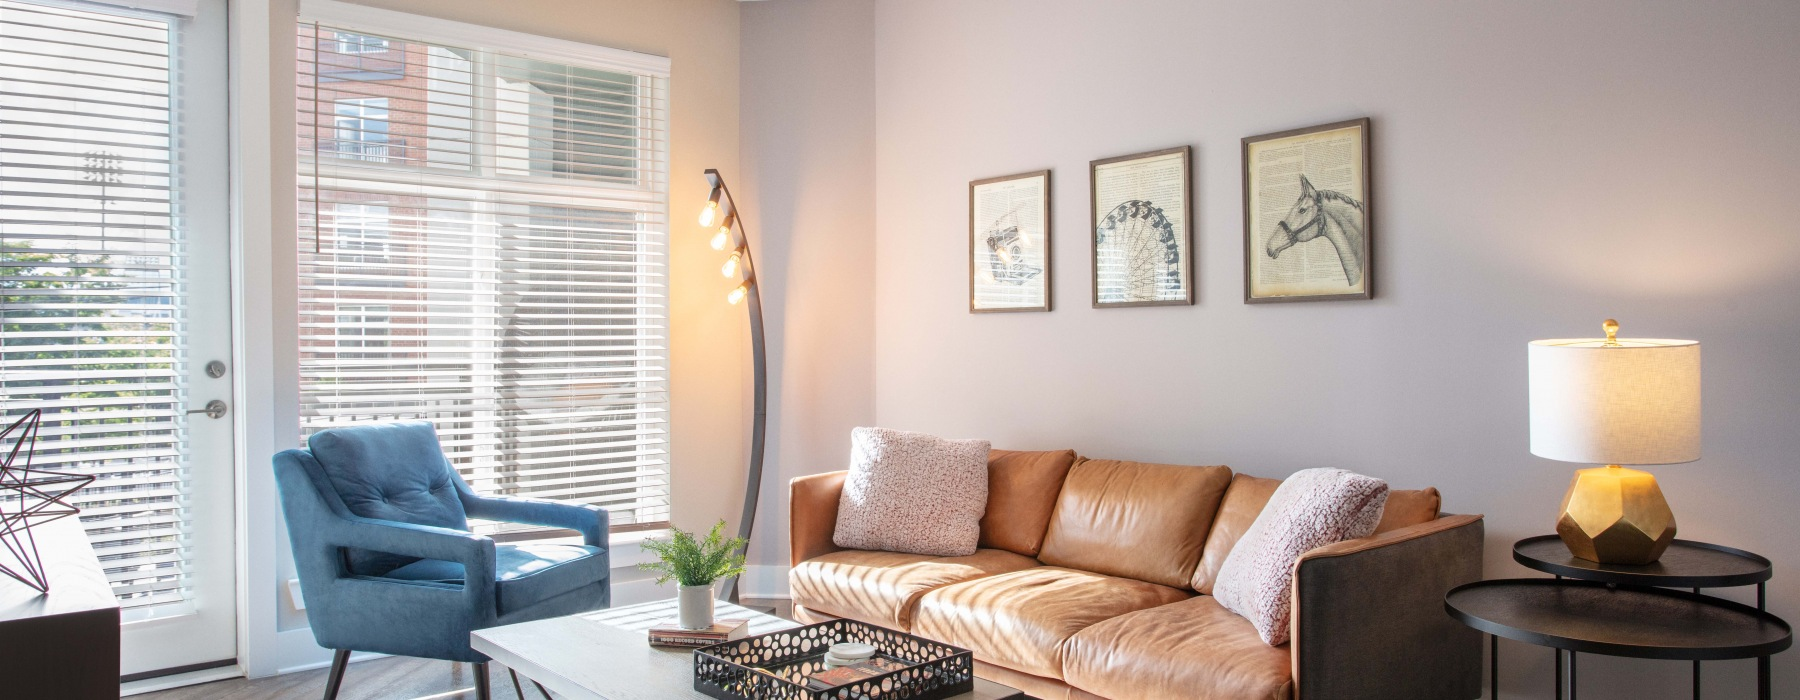 living room with couch, accent chair, coffee table and lots of natural light